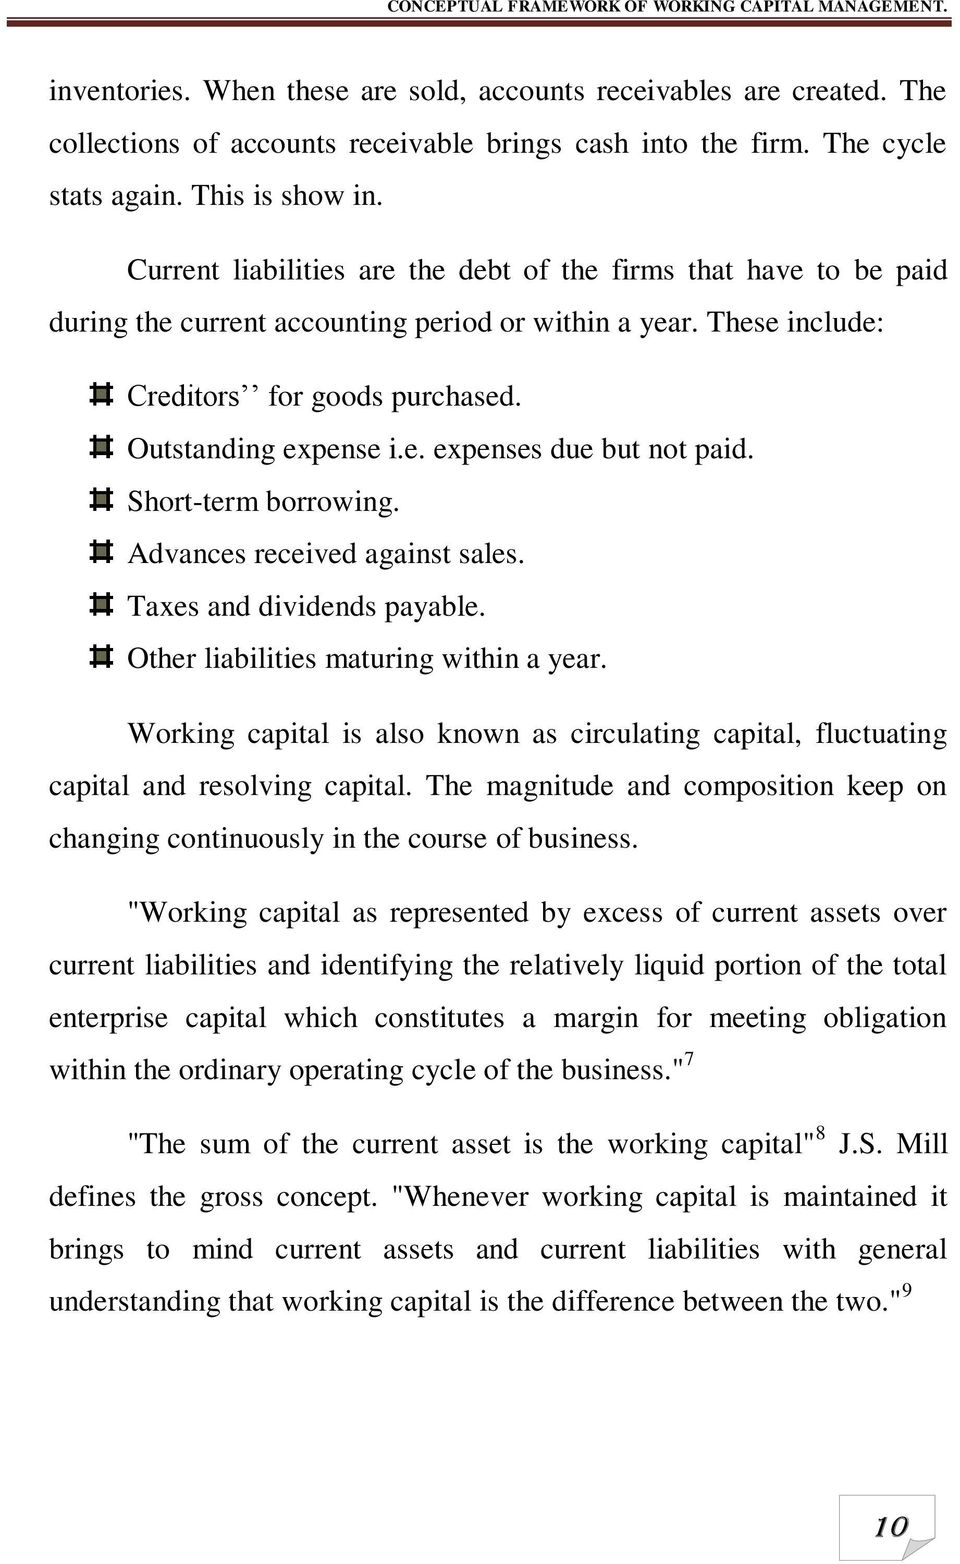 The composition of working capital 73